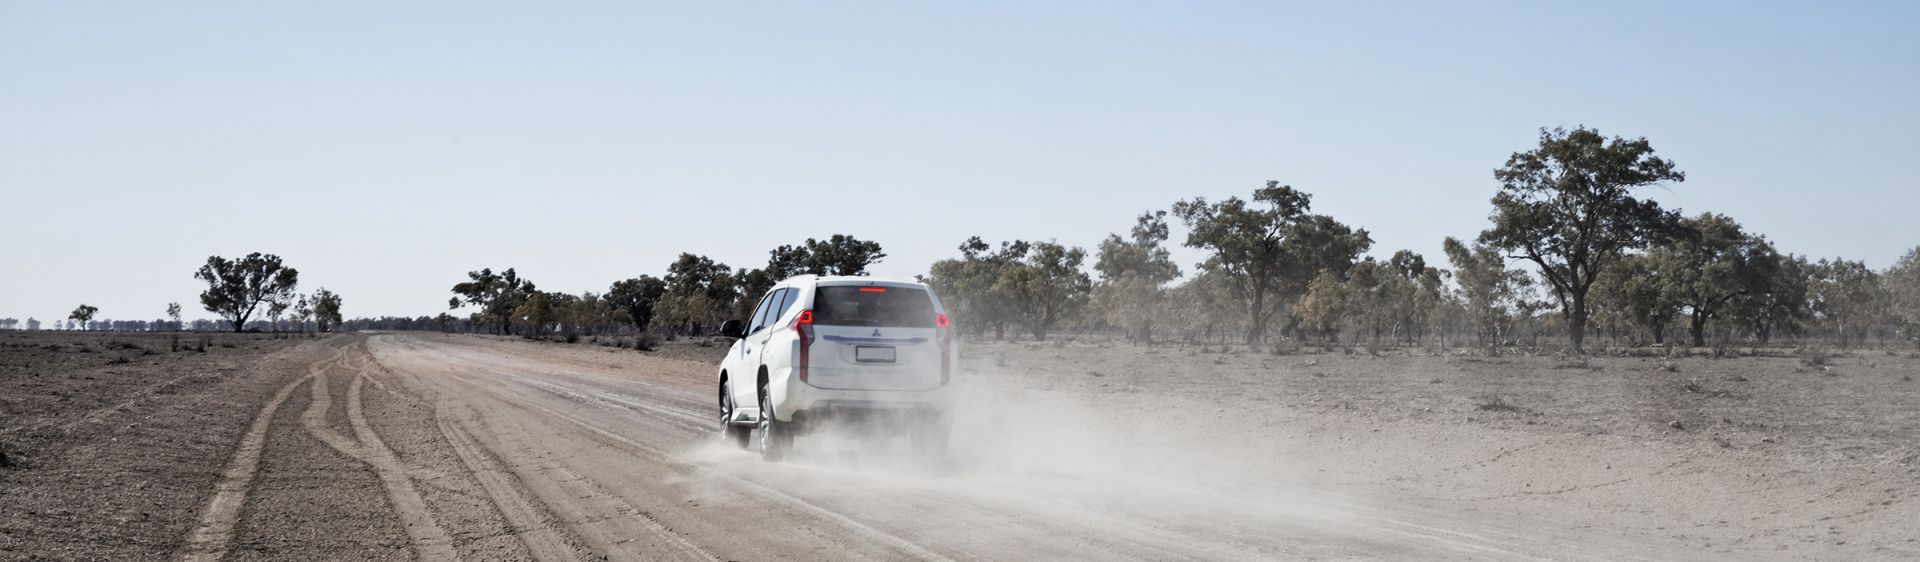 A white four wheel drive drives along a dirt road in the Outback near Wilcannia